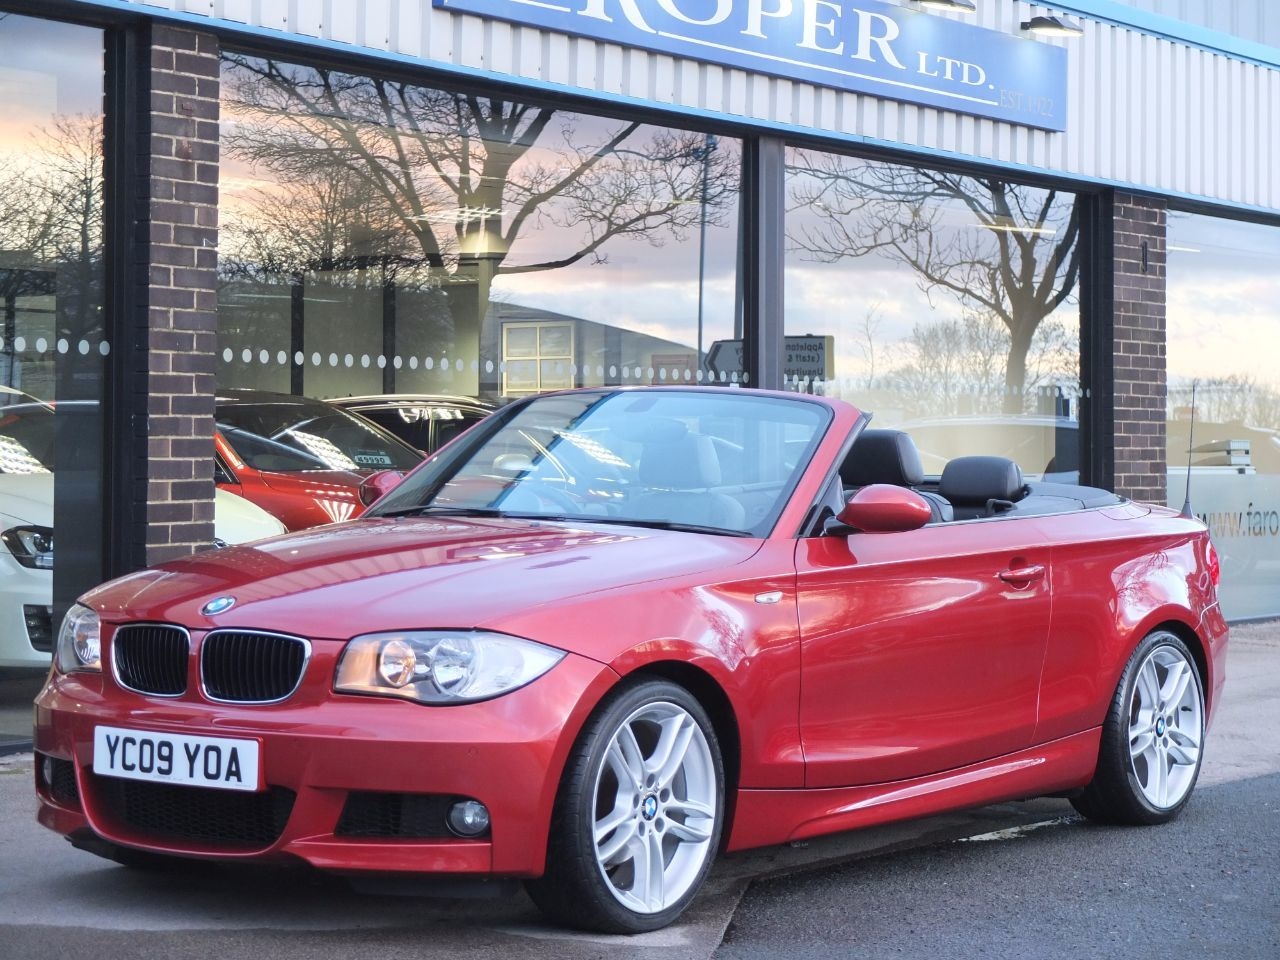 BMW 1 Series 2.0 118i M Sport Convertible Convertible Petrol Sedona Red Metallic, Black HoodBMW 1 Series 2.0 118i M Sport Convertible Convertible Petrol Sedona Red Metallic, Black Hood at fa Roper Ltd Bradford